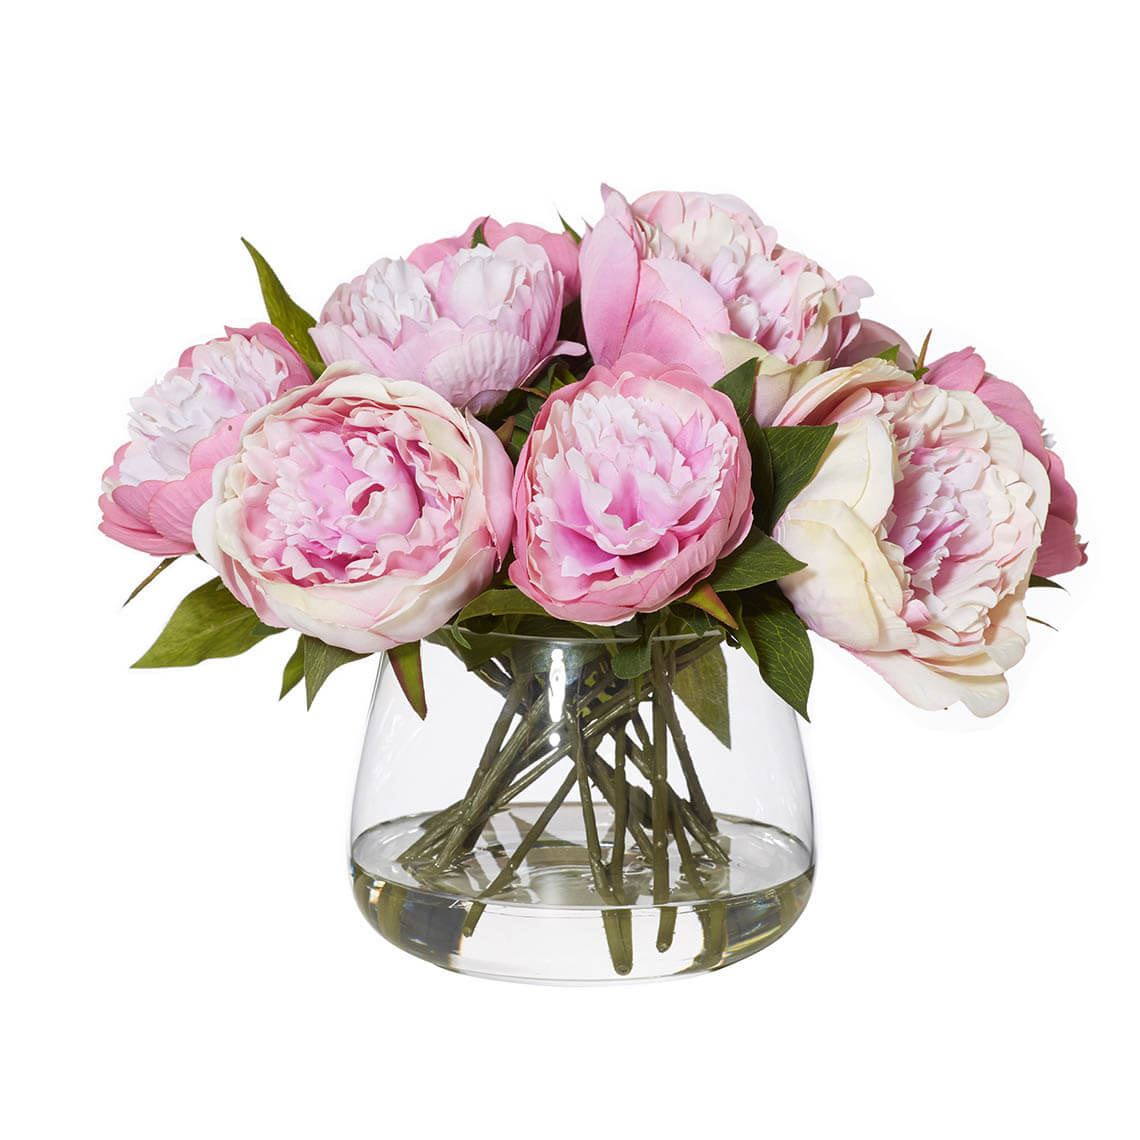 Peony Artificial Flower Size W 36cm x D 36cm x H 28cm in Purple Freedom by Freedom, a Plants for sale on Style Sourcebook